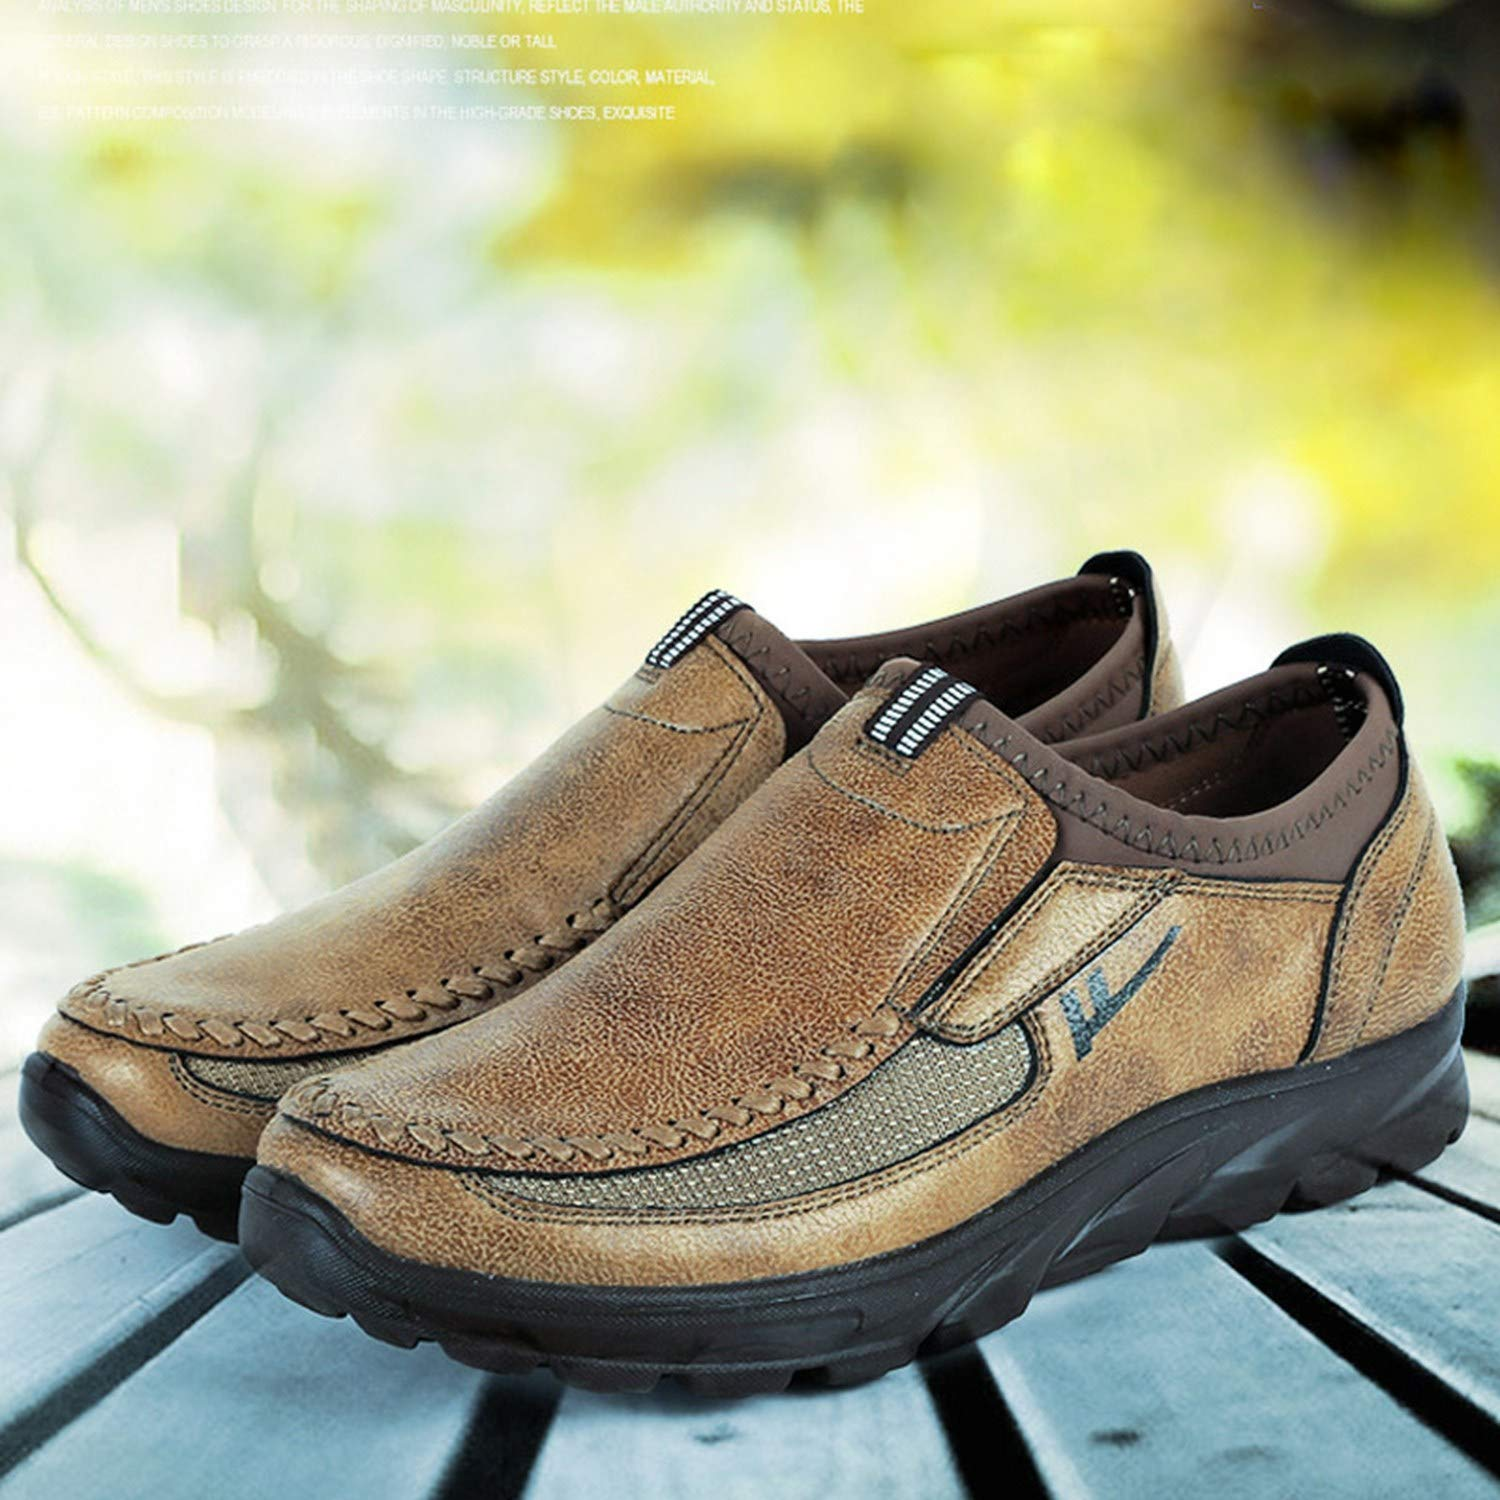 Faux Suede Shoes Breathable Single Footwear Slip On Sole Loafers Male Casual Outdoor Sneaker Anti Slip,Yellow,13.5,Italy